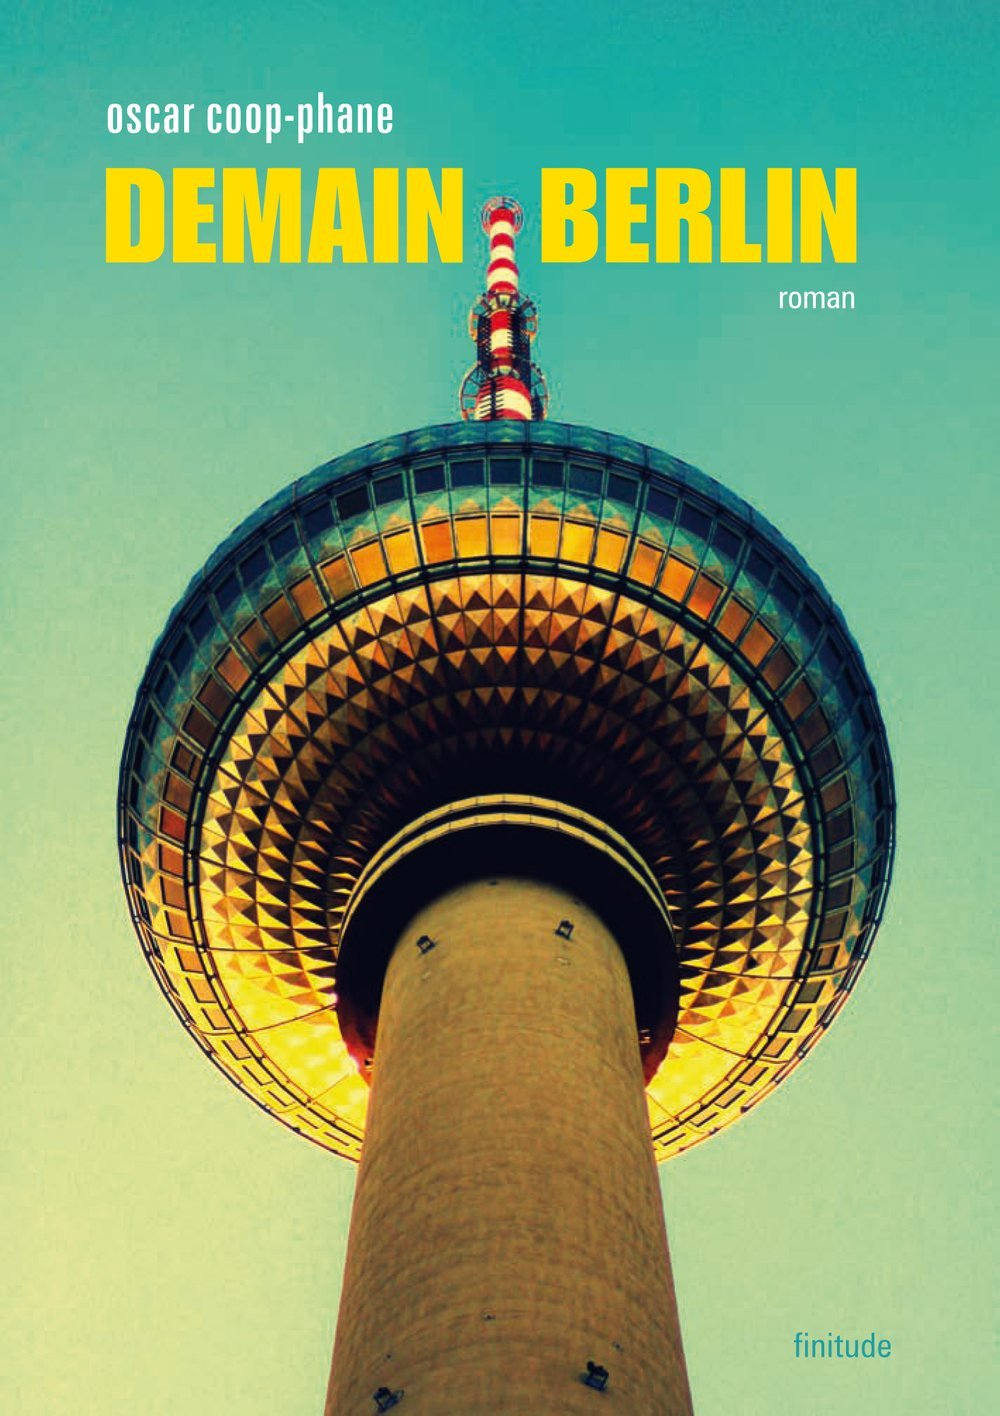 demainberlin